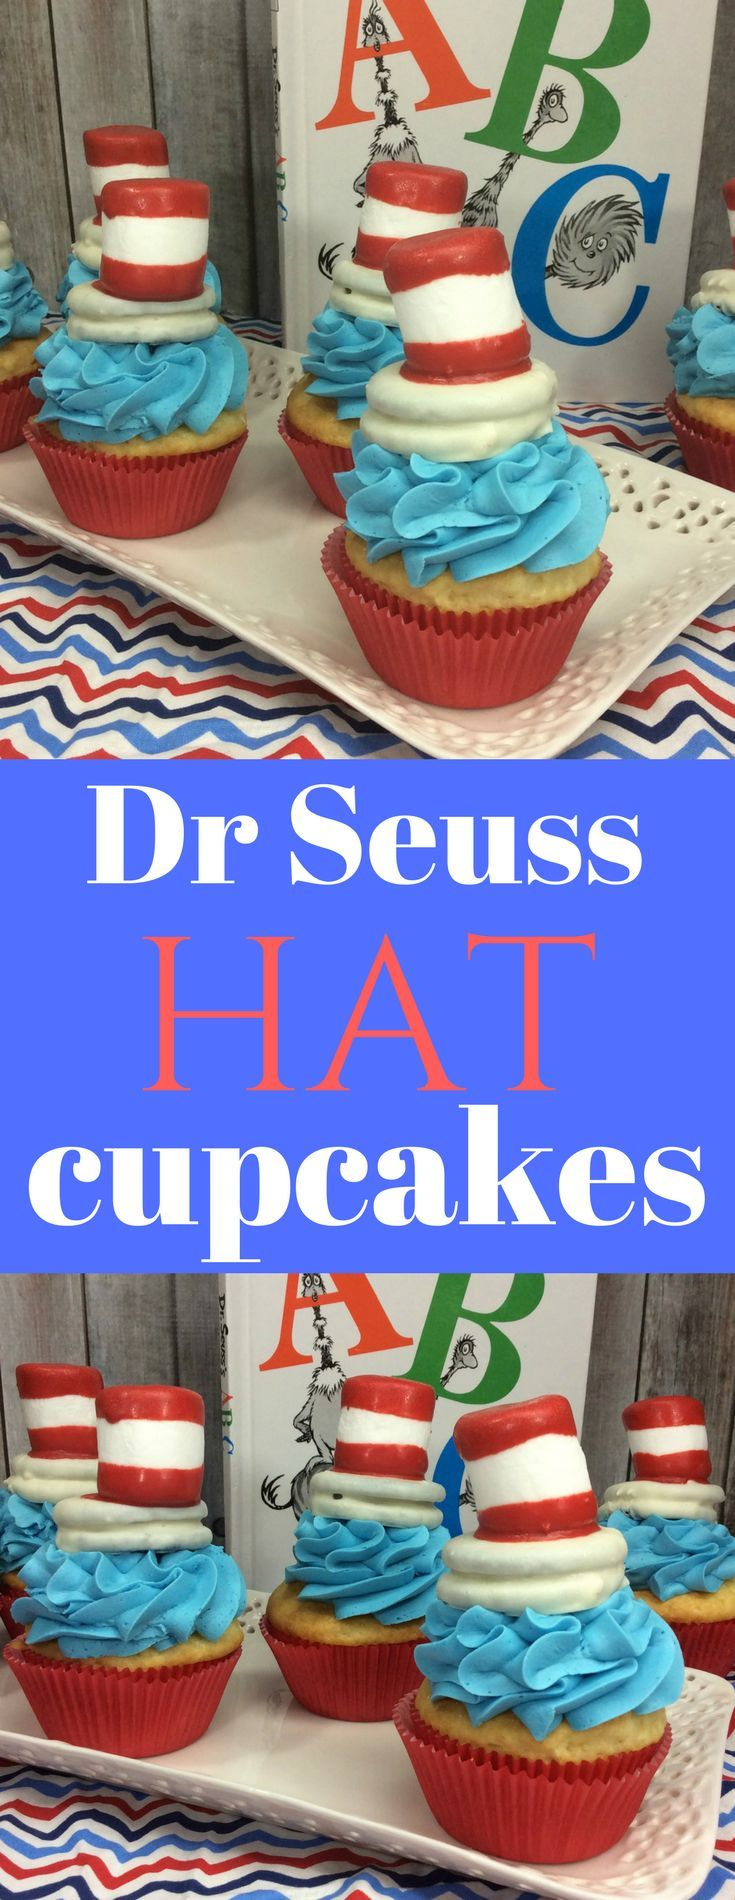 How cute are these Dr Seuss Cat in the Hat cupcakes. If you are looking for dr seuss hat desserts this one is perfect for celebrate his birthday.